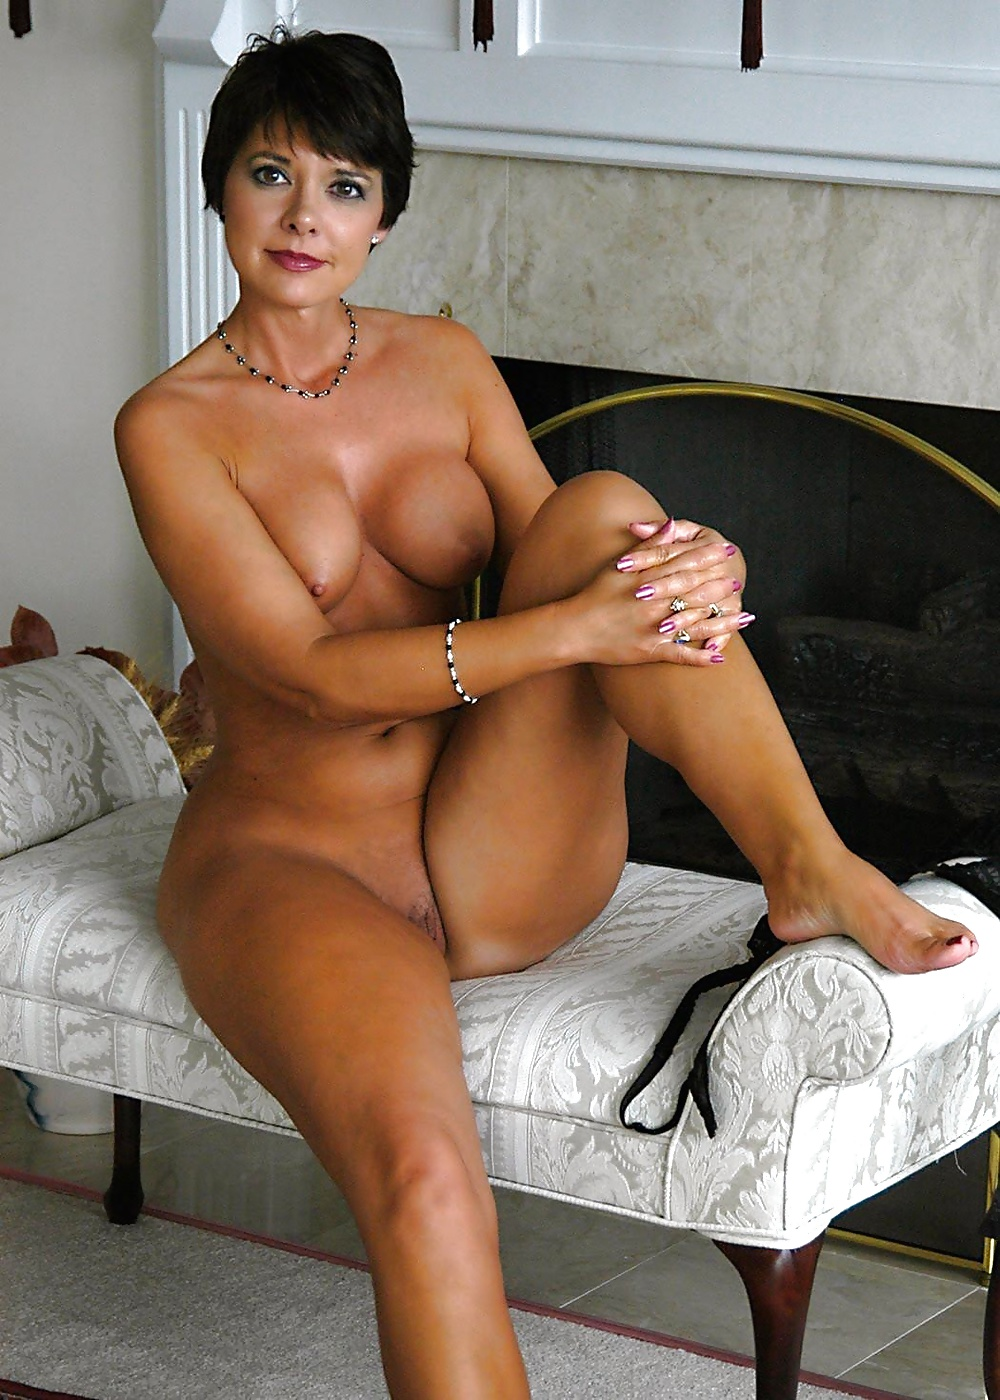 Busty Nude Mature Galleries 9